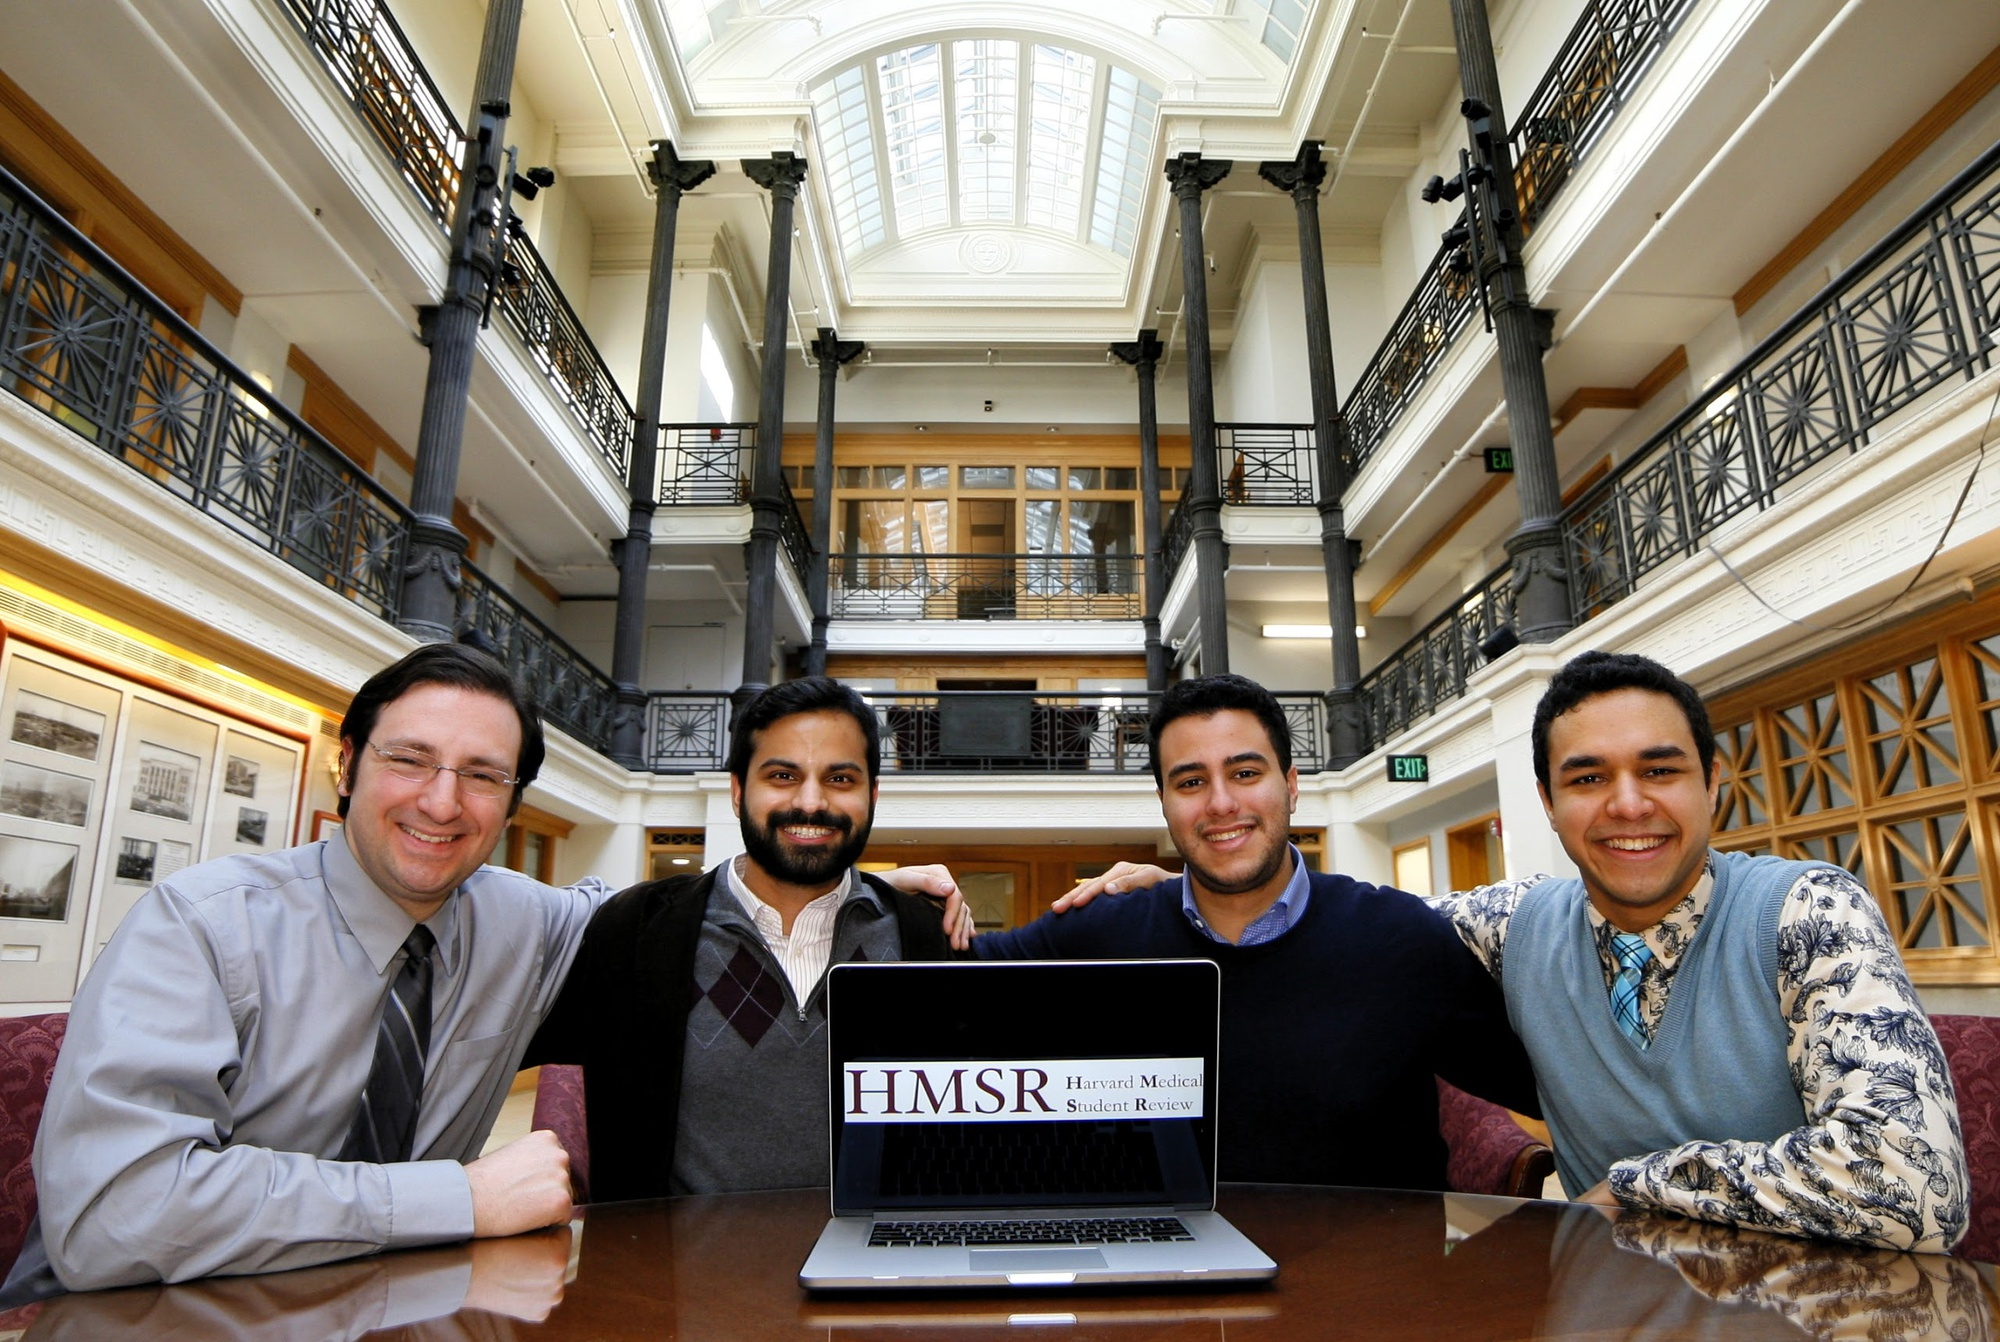 HMS students Noor M.R. Beckwith '11, Omar Abudayyeh, and Jay Kumar and teaching assistant Adam Frange, founders of the Harvard Medical Student Review, pose together for the launch of the online journal.